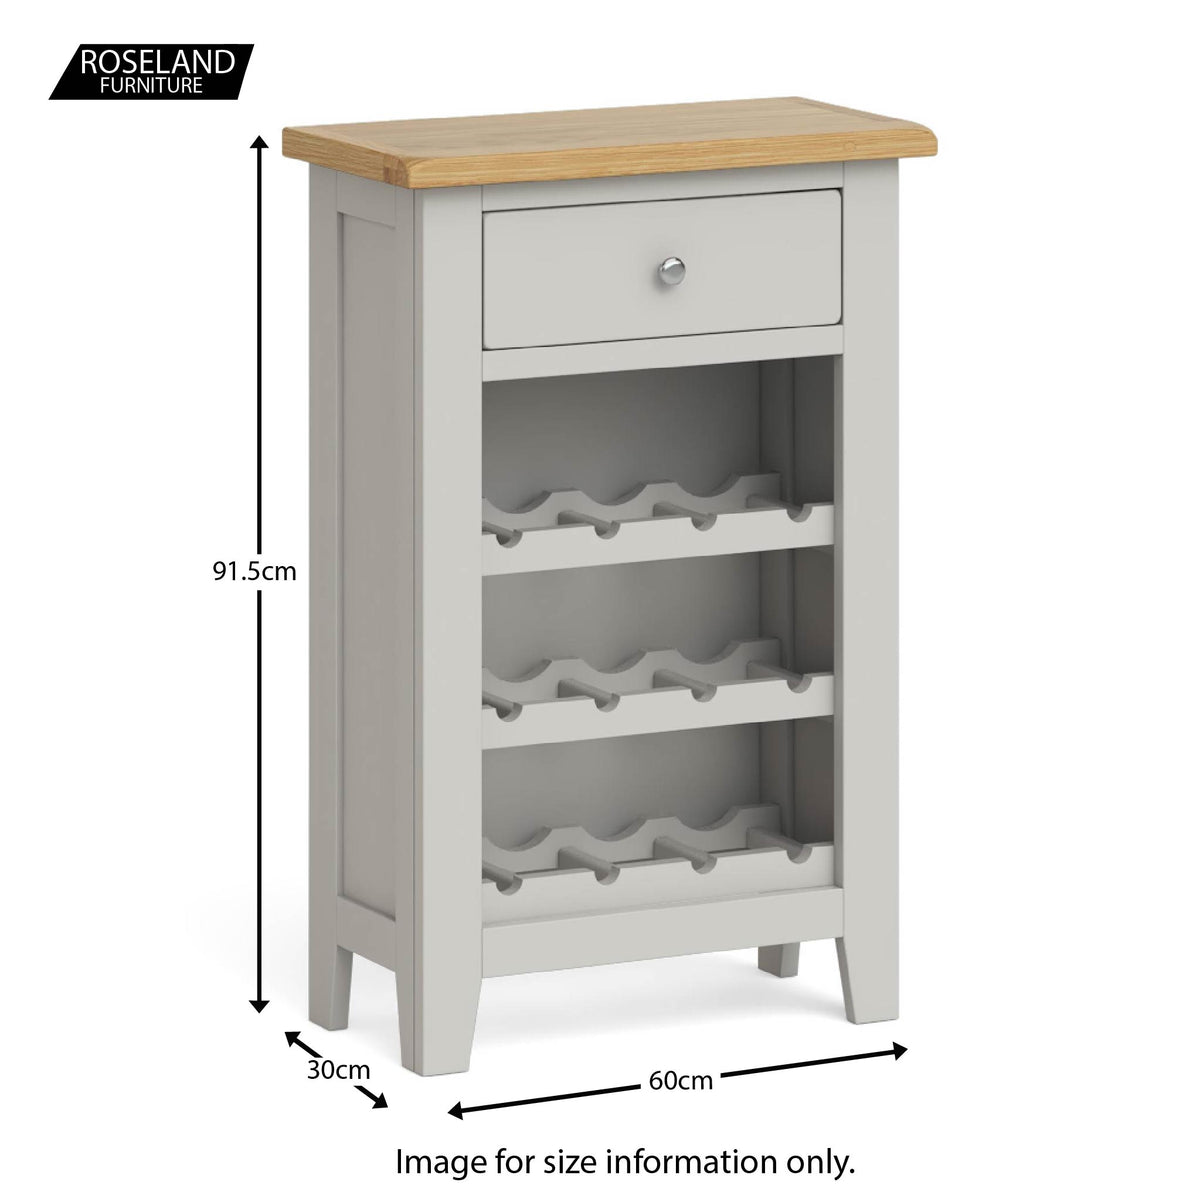 Lundy Grey Wine Rack Cabinet - Size guide